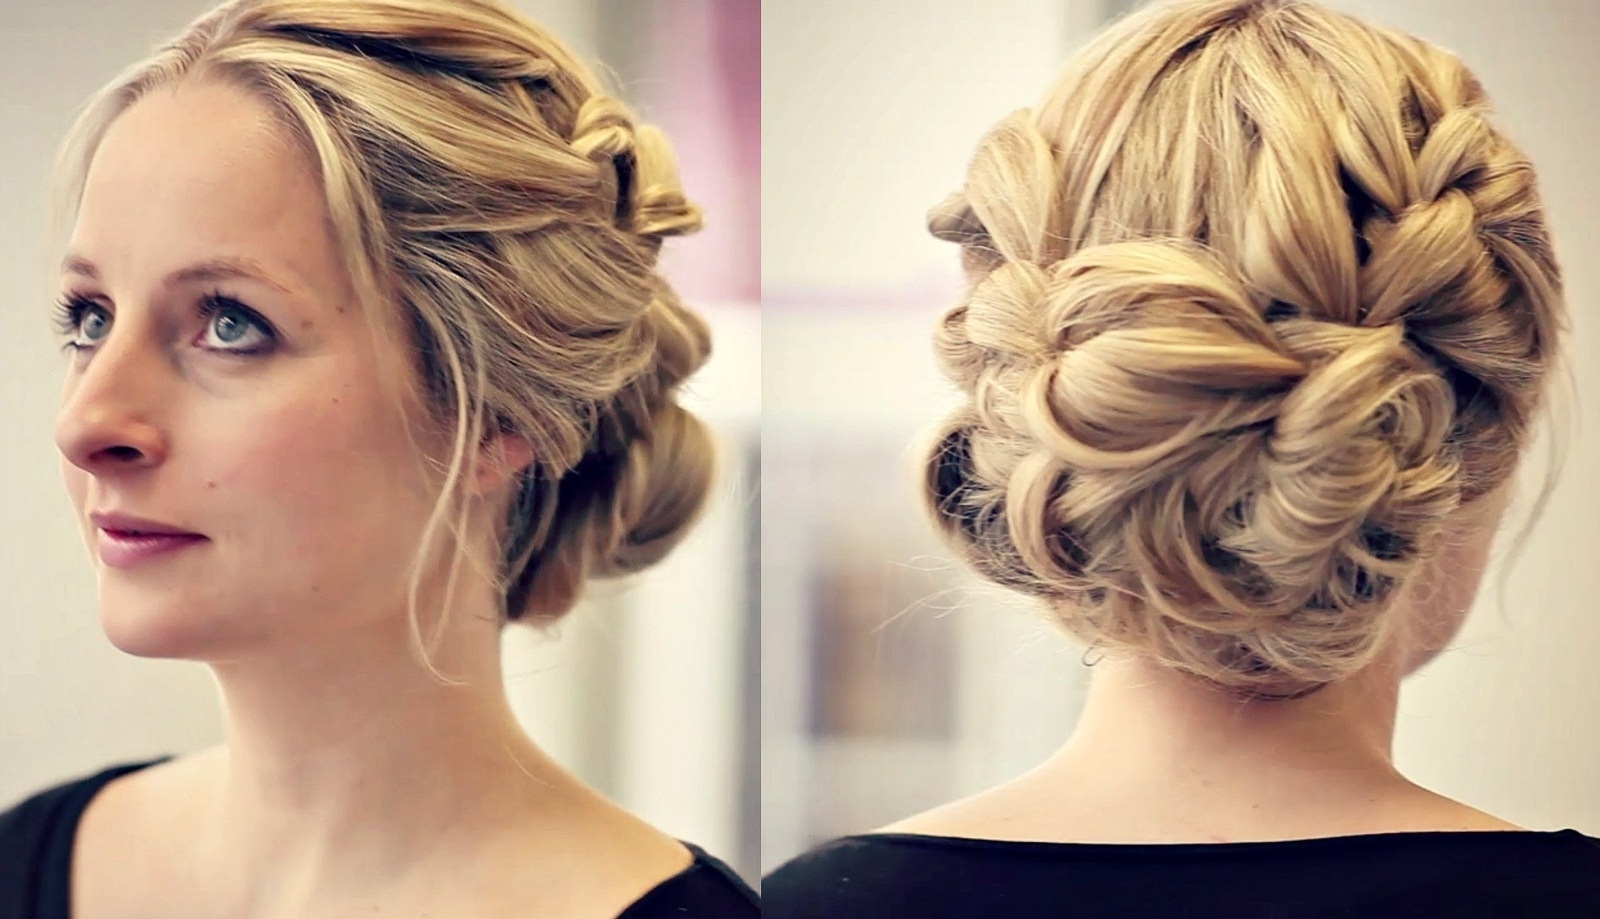 Updo Hairstyles For Weddings Mother Of The Bride – Hairstyle For Intended For Widely Used Mother Of Bride Wedding Hairstyles (View 14 of 15)